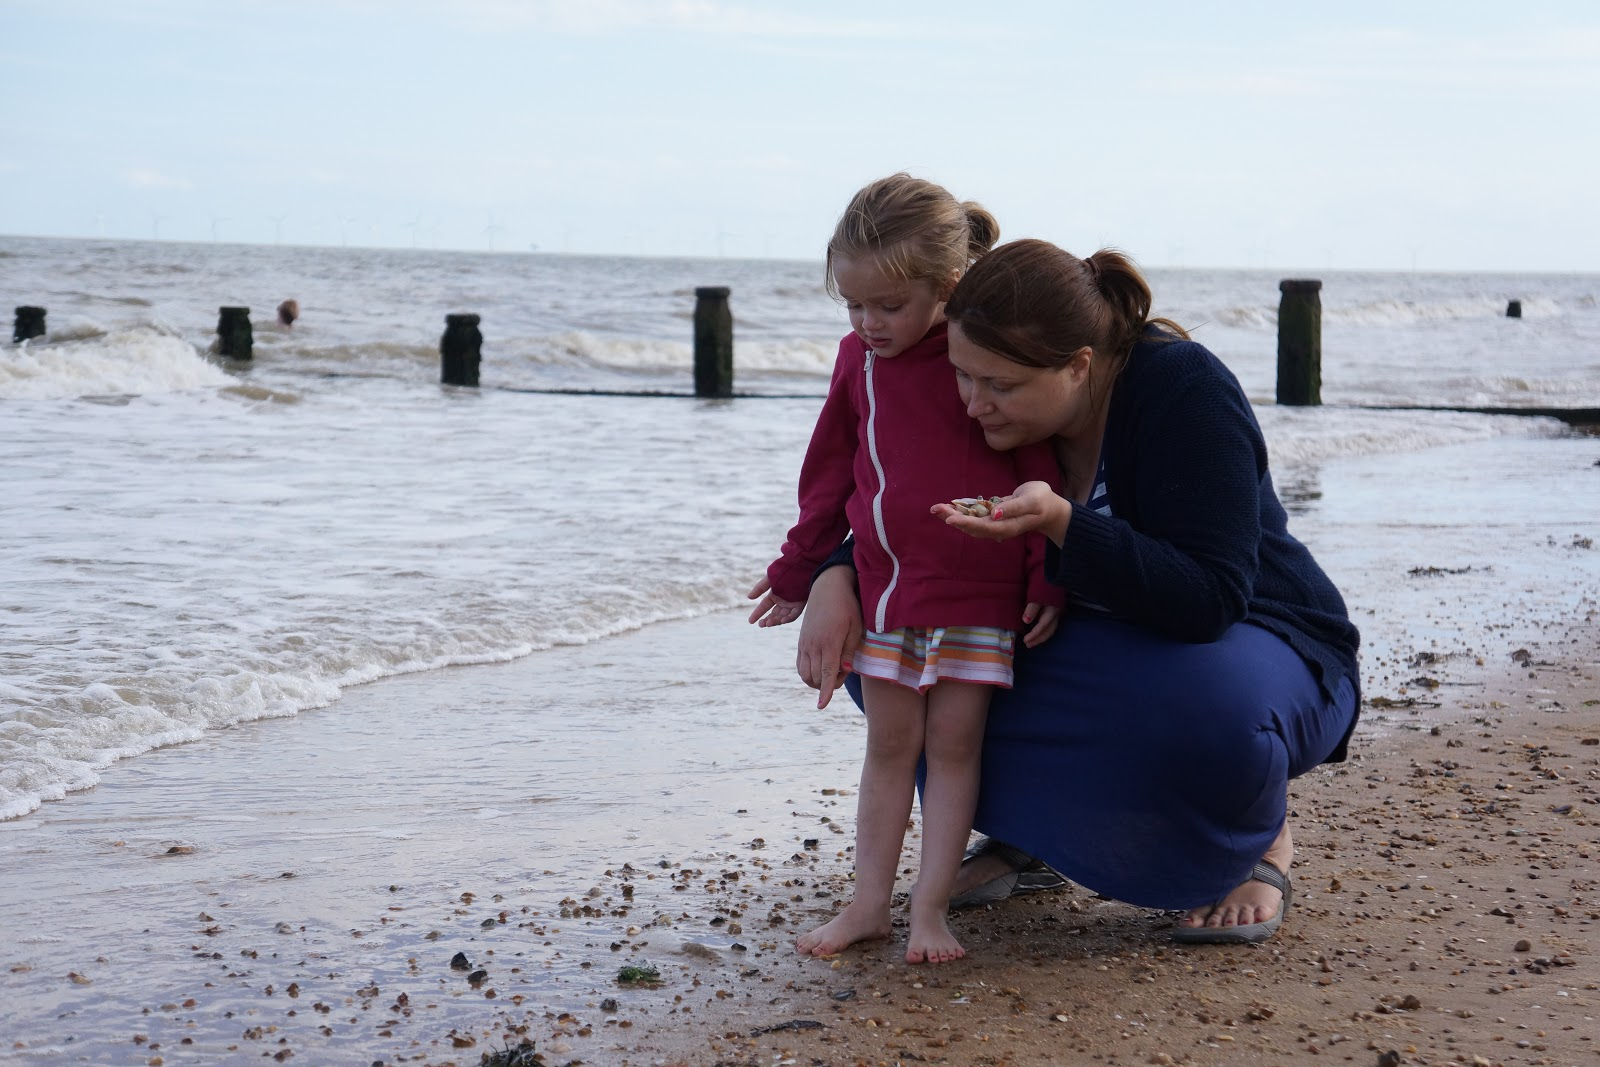 mum collecting seashells with daughter